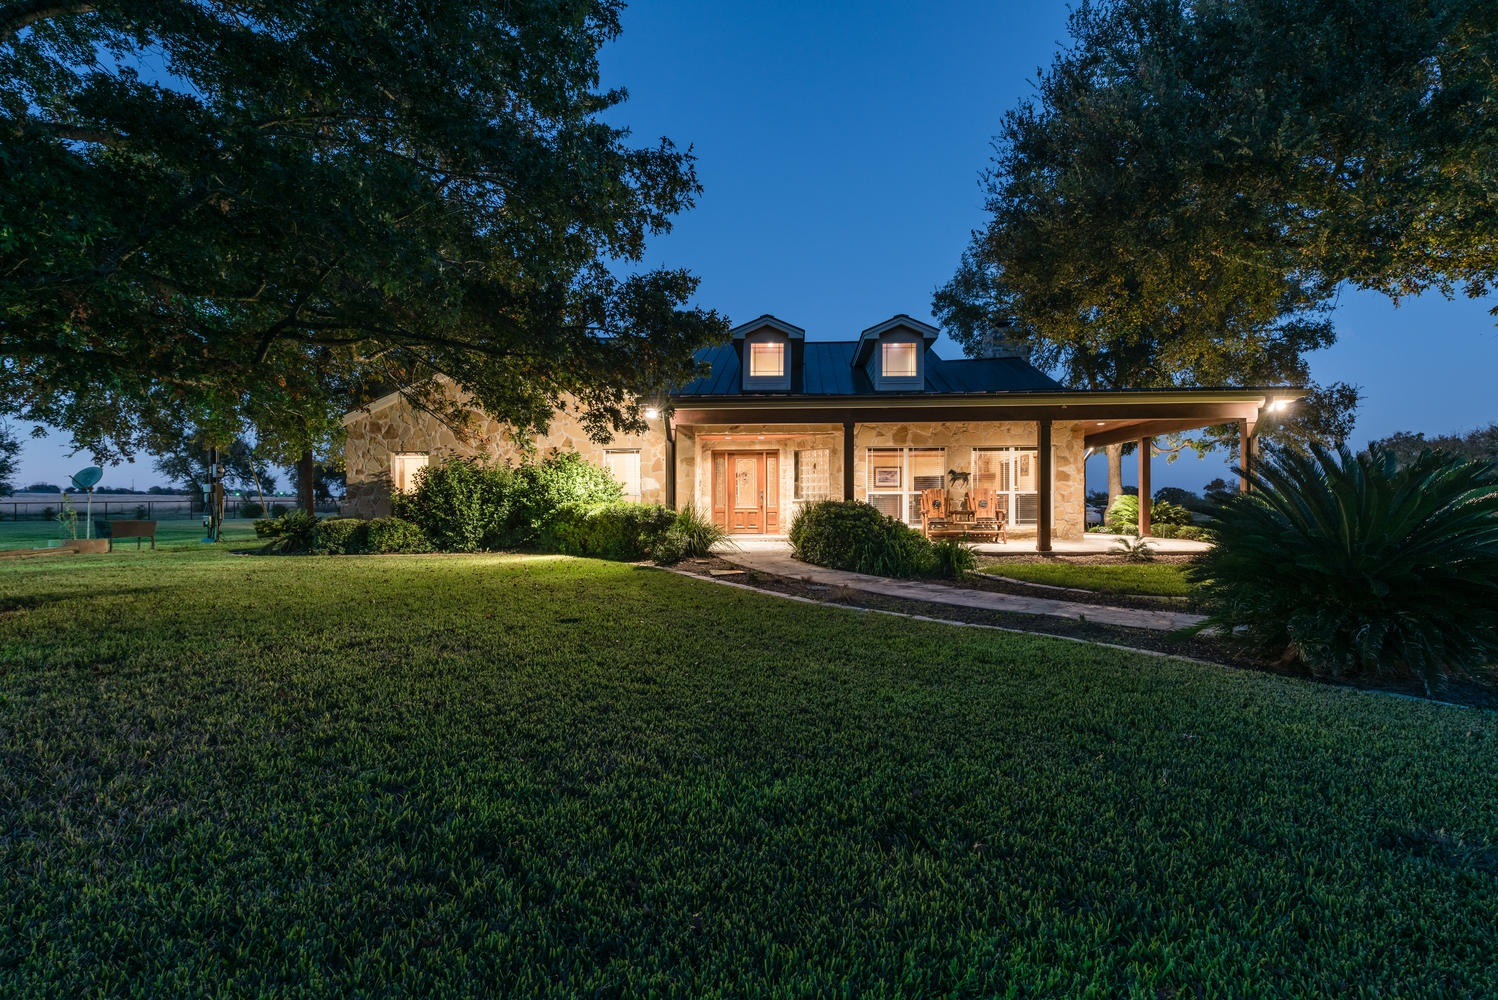 The Texas Ranch Style House